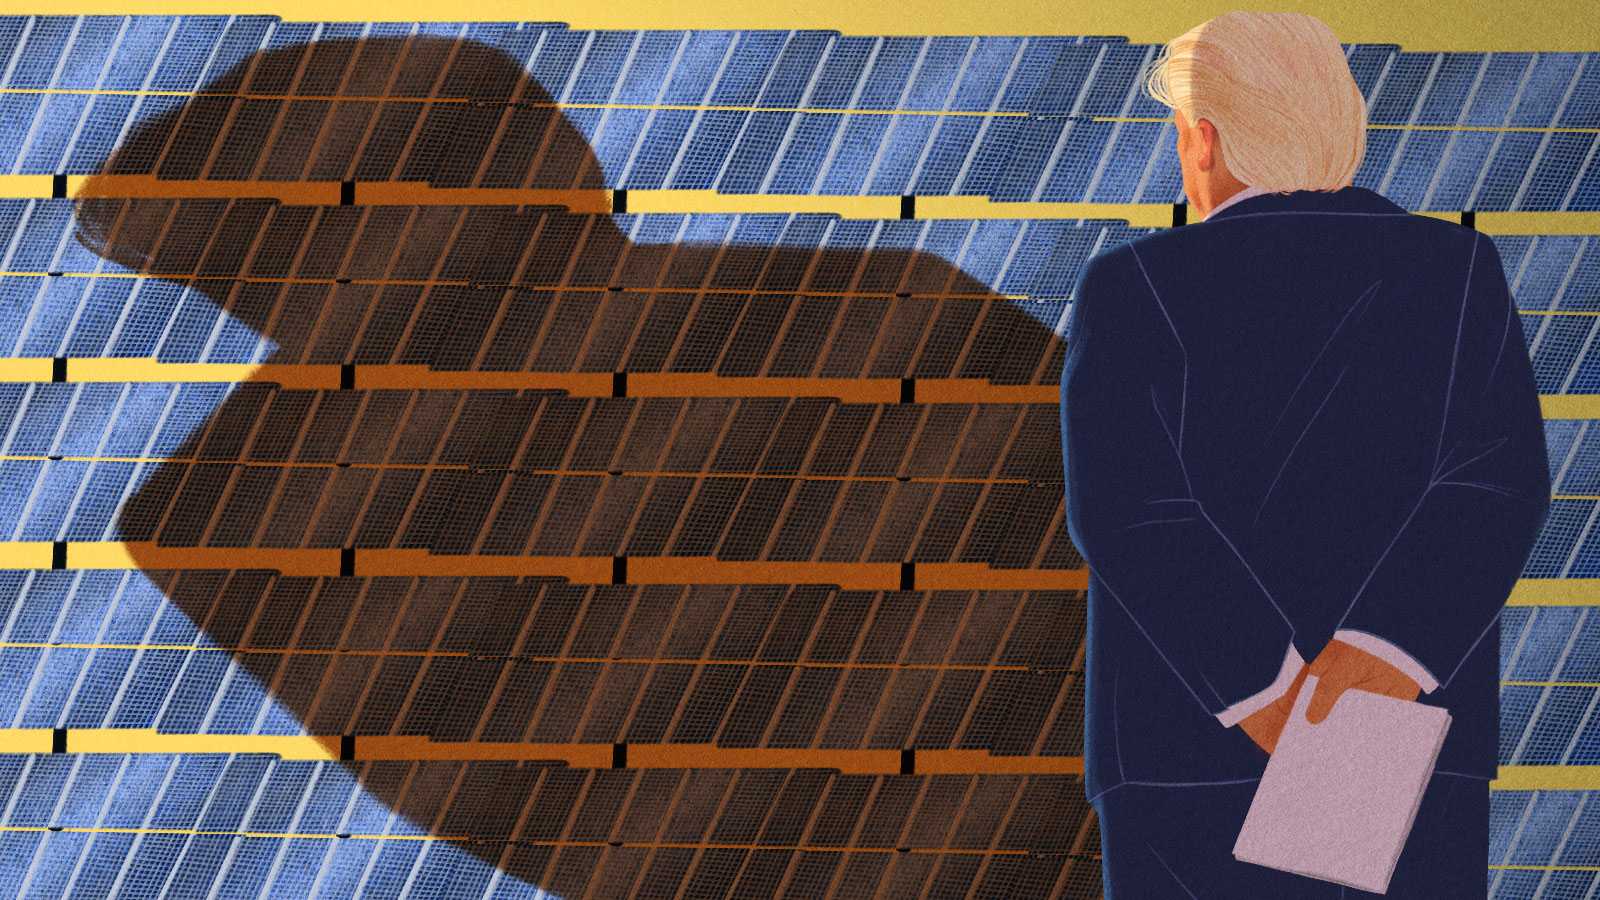 Illustration depicting President Trump looming over a field of solar panels, casting a large orange shadow, while holding papers behind his back.